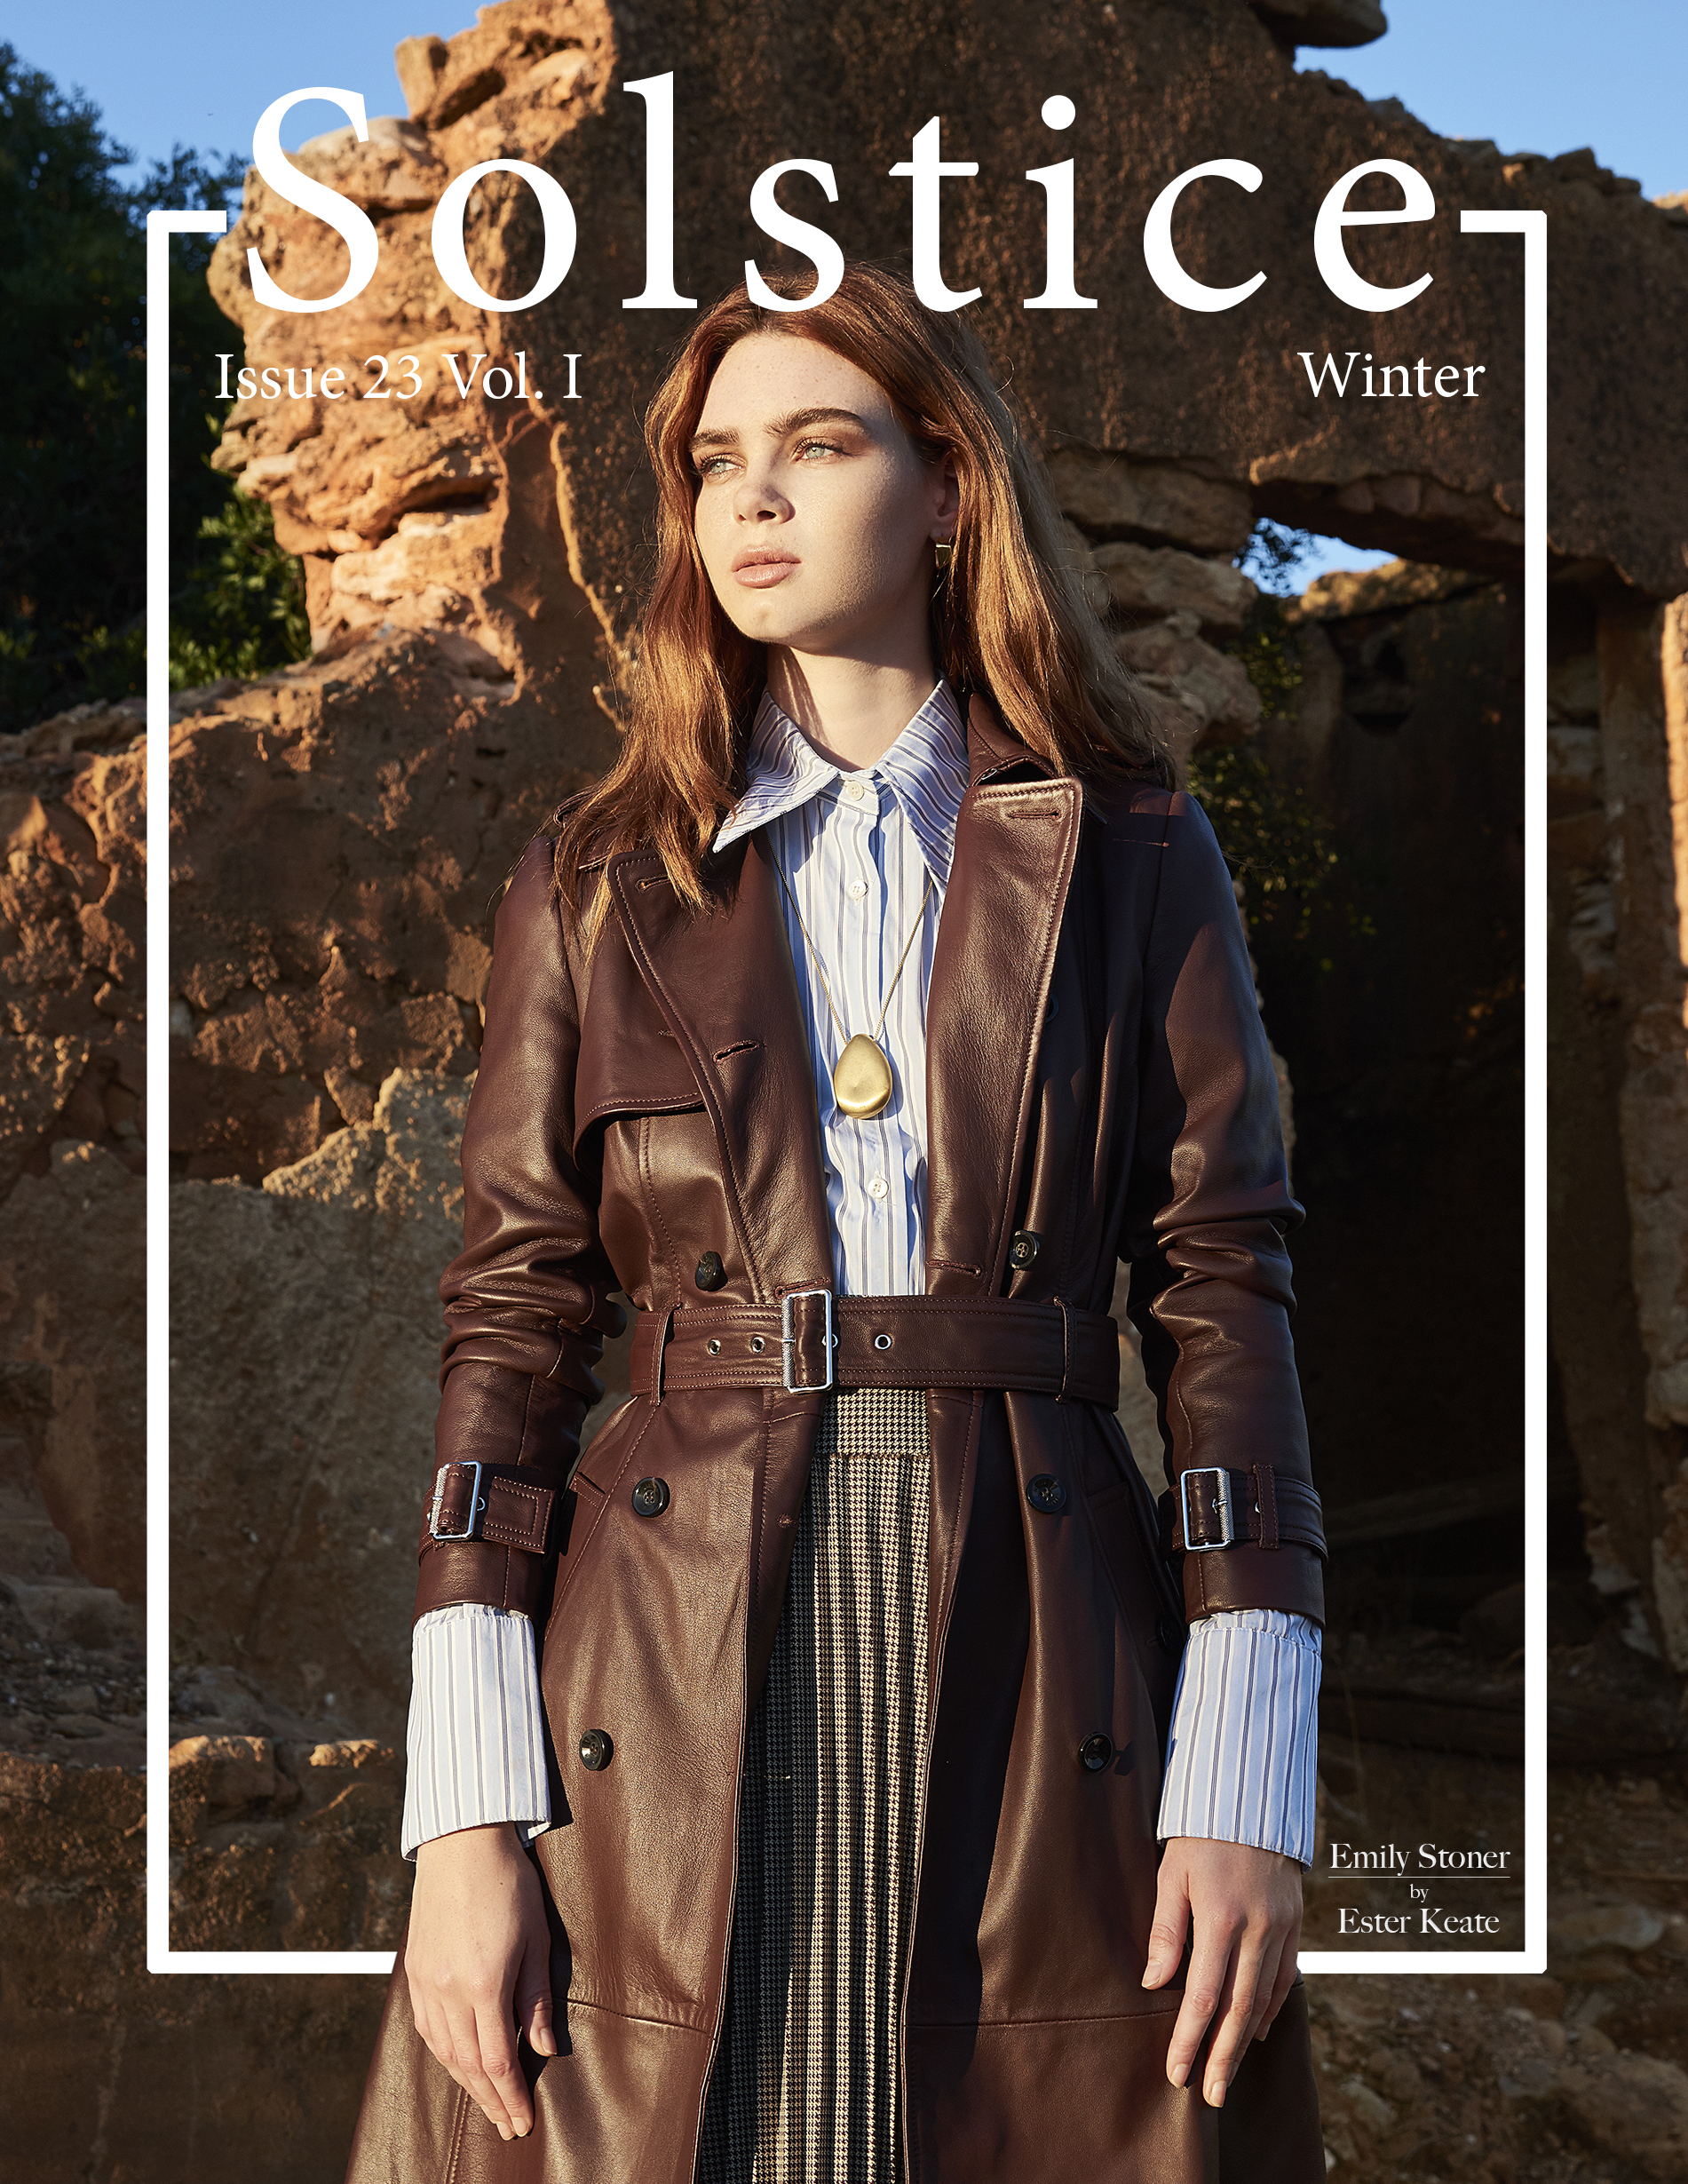 Solstice Magazine - Cover Issue 23 Vol 1